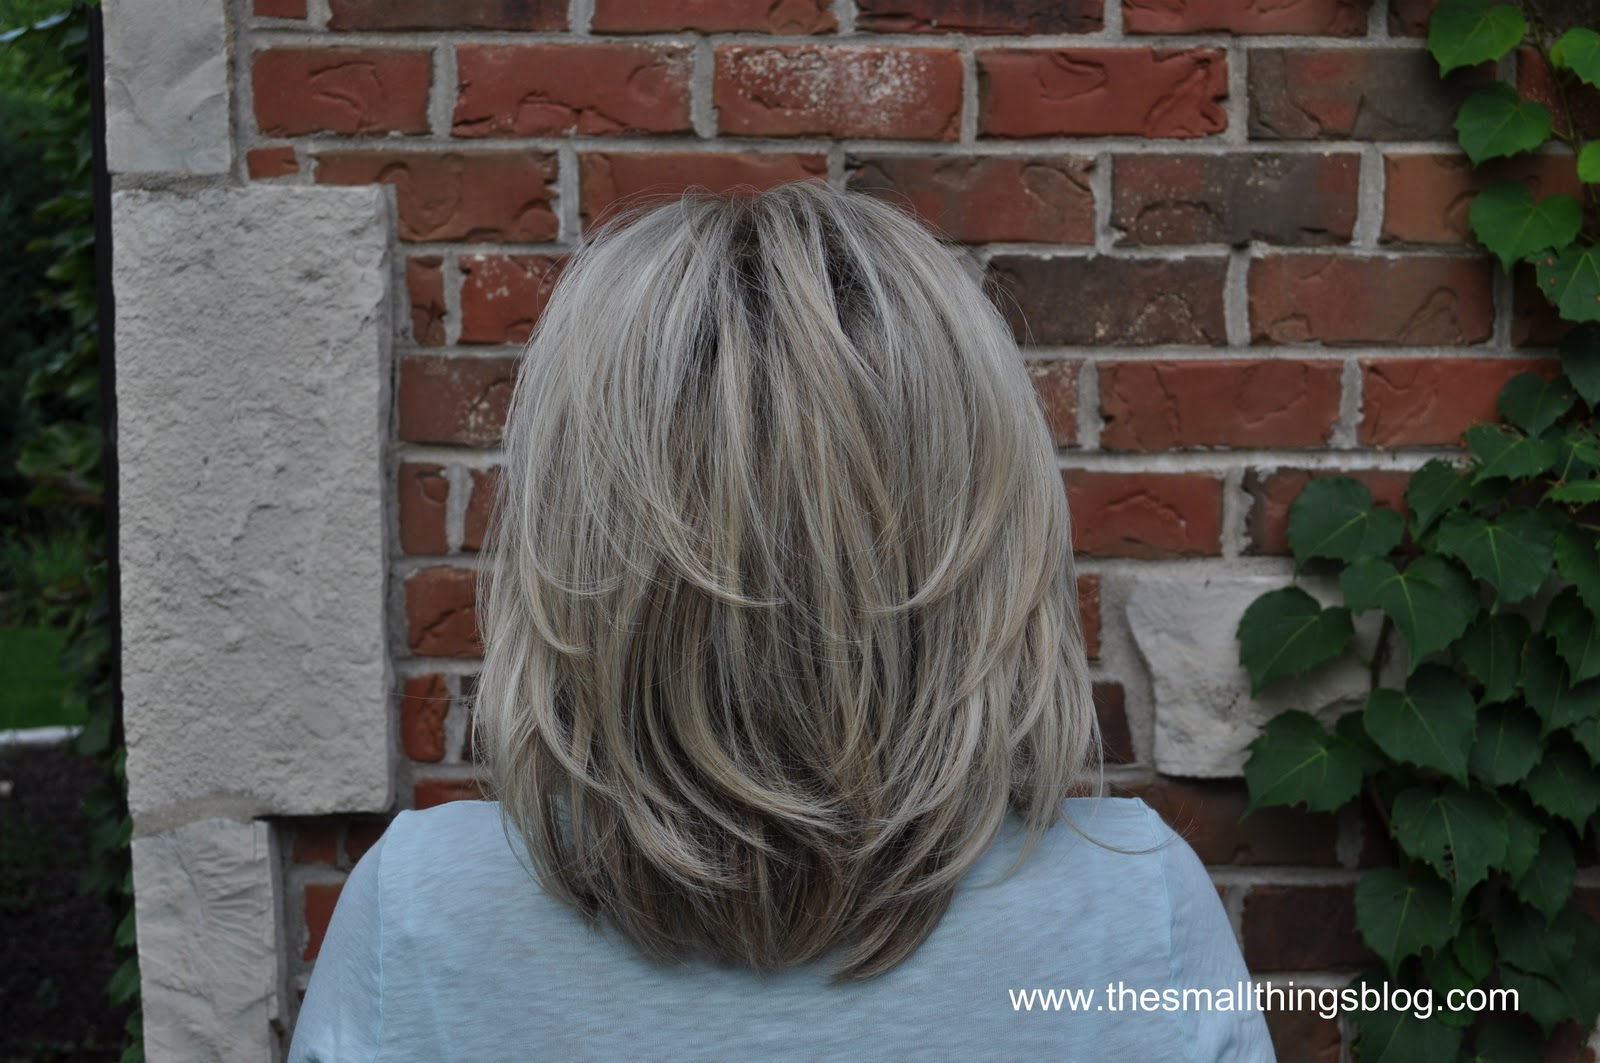 My Haircut - The Small Things Blog